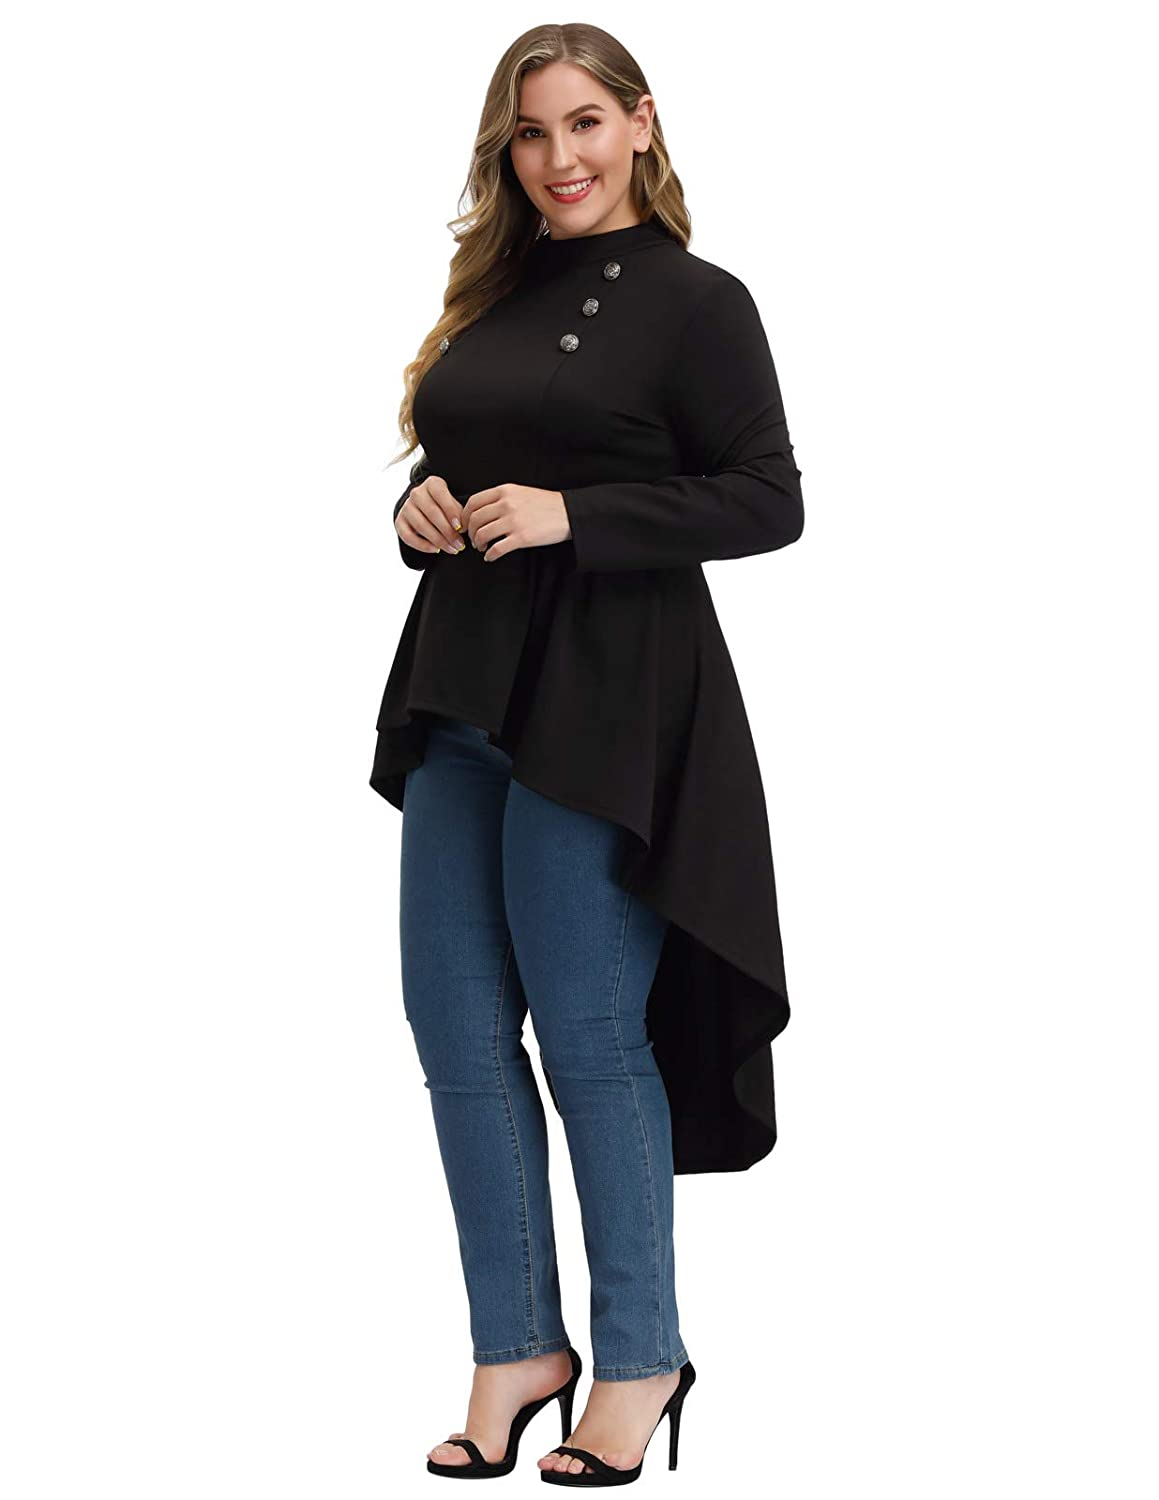 Steampunk Plus Size Clothing & Costumes Woman Plus Size Steampunk Shirt Gothic Victorian Long Sleeve Blouse Top $30.99 AT vintagedancer.com